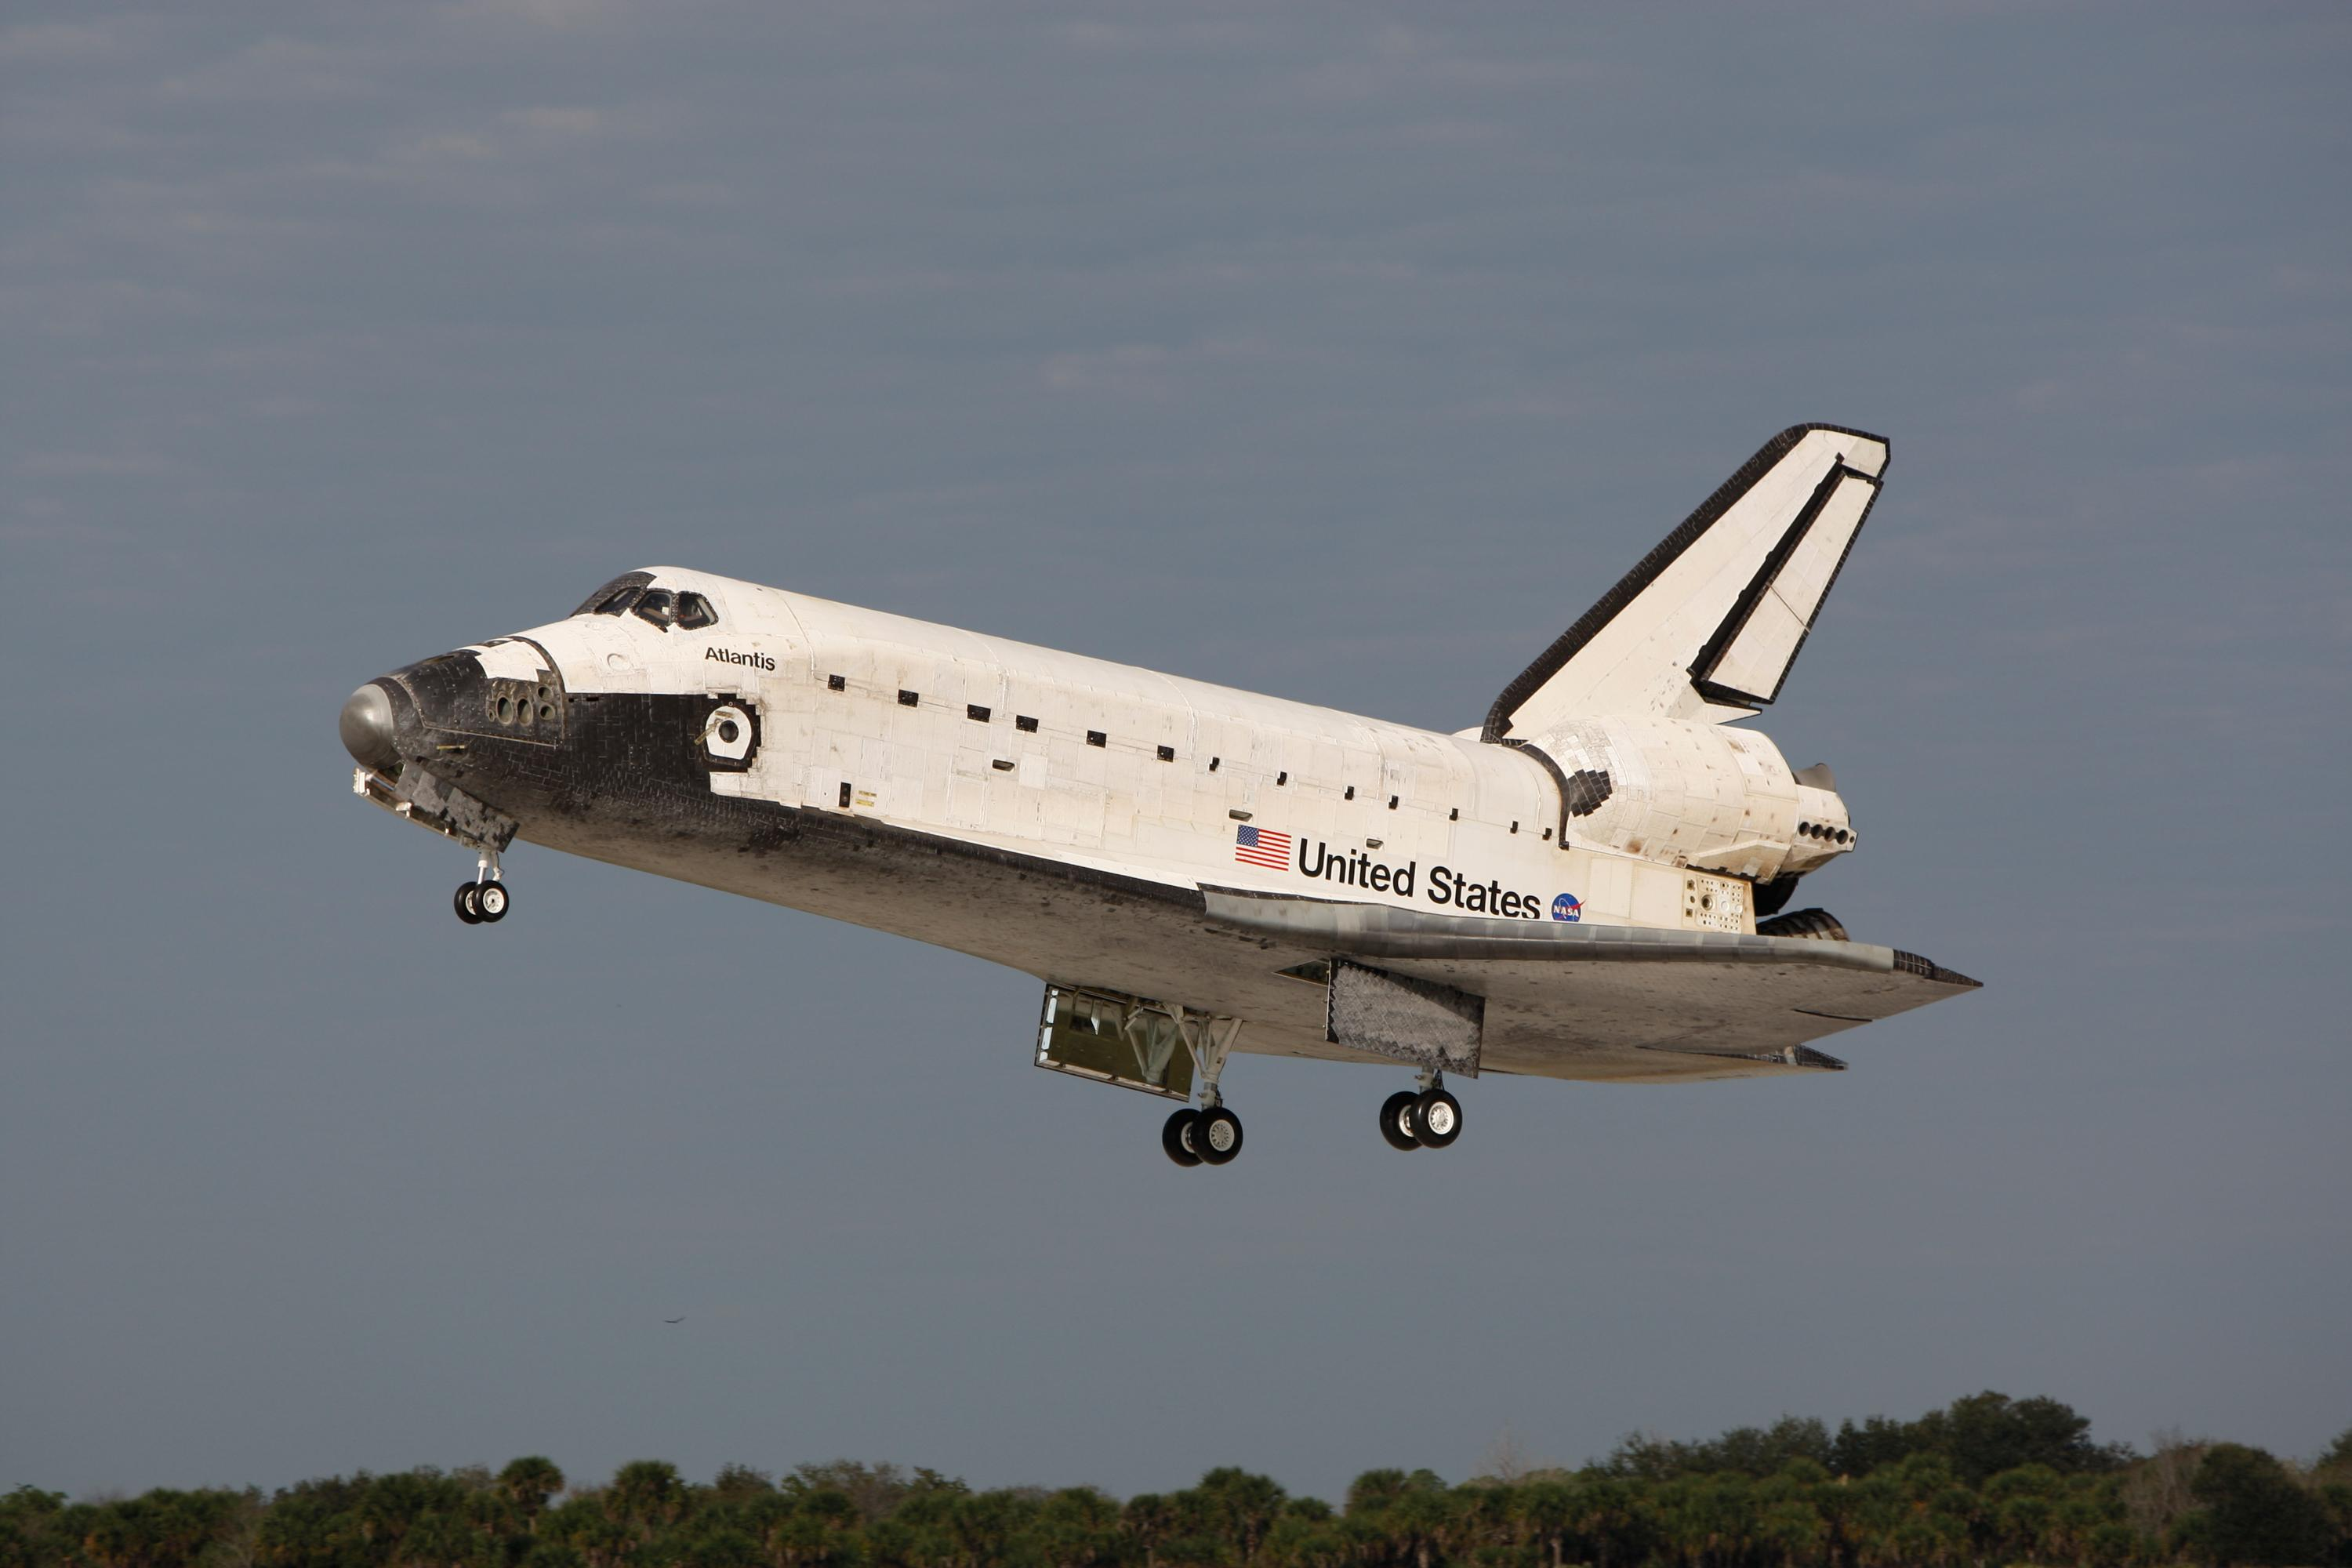 nasa space shuttle space shuttle picture